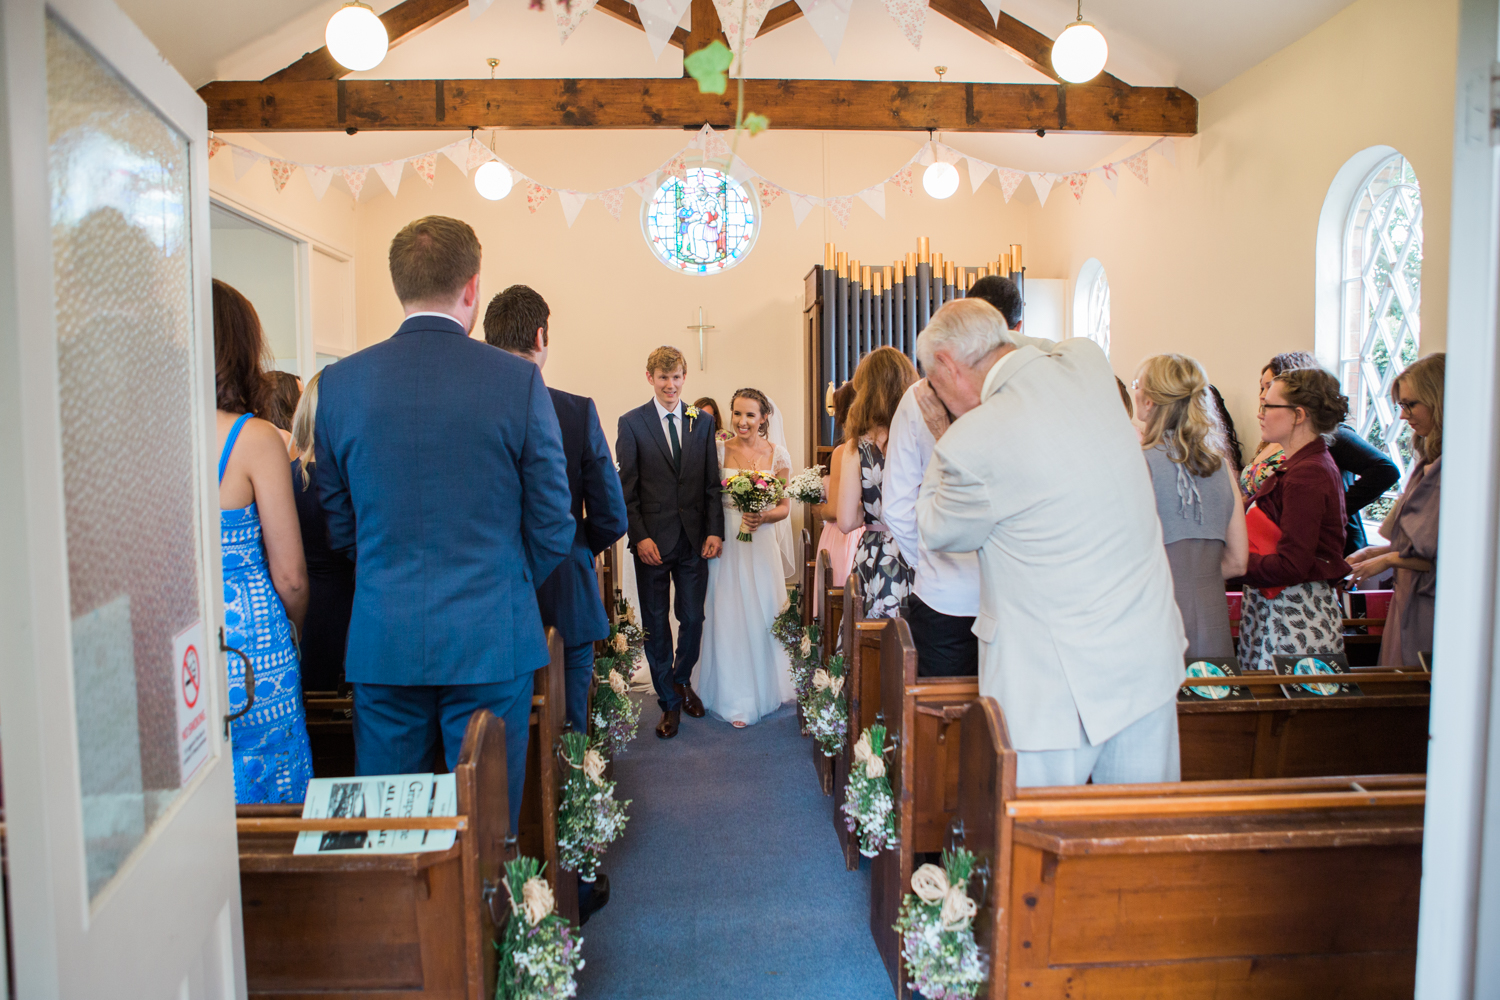 057Lotti & Dave marquee wedding Sophie Evans Photography West Midlands reportage wedding photography.jpg